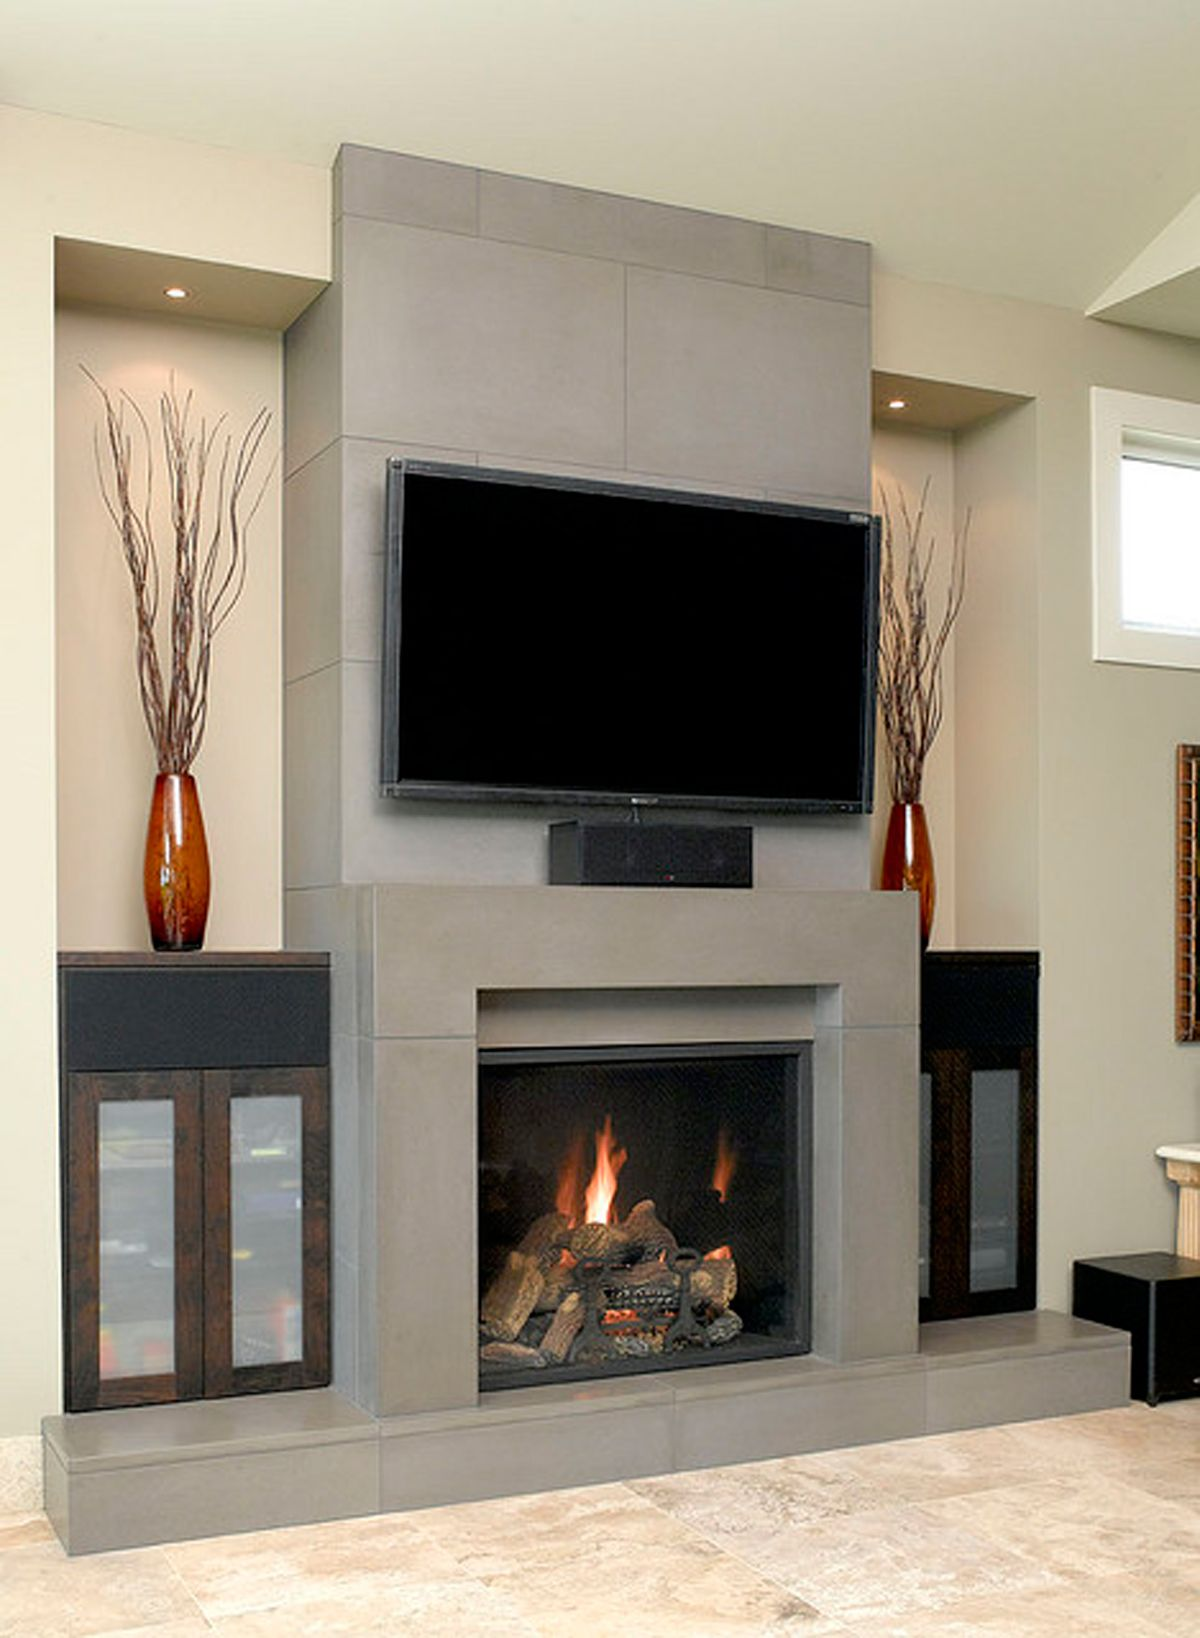 Fireplace Design Idea fireplace design ideas Fireplaces Designs Fireplace Designs One Of 5 Total Pics Contemporary Gas Fireplace